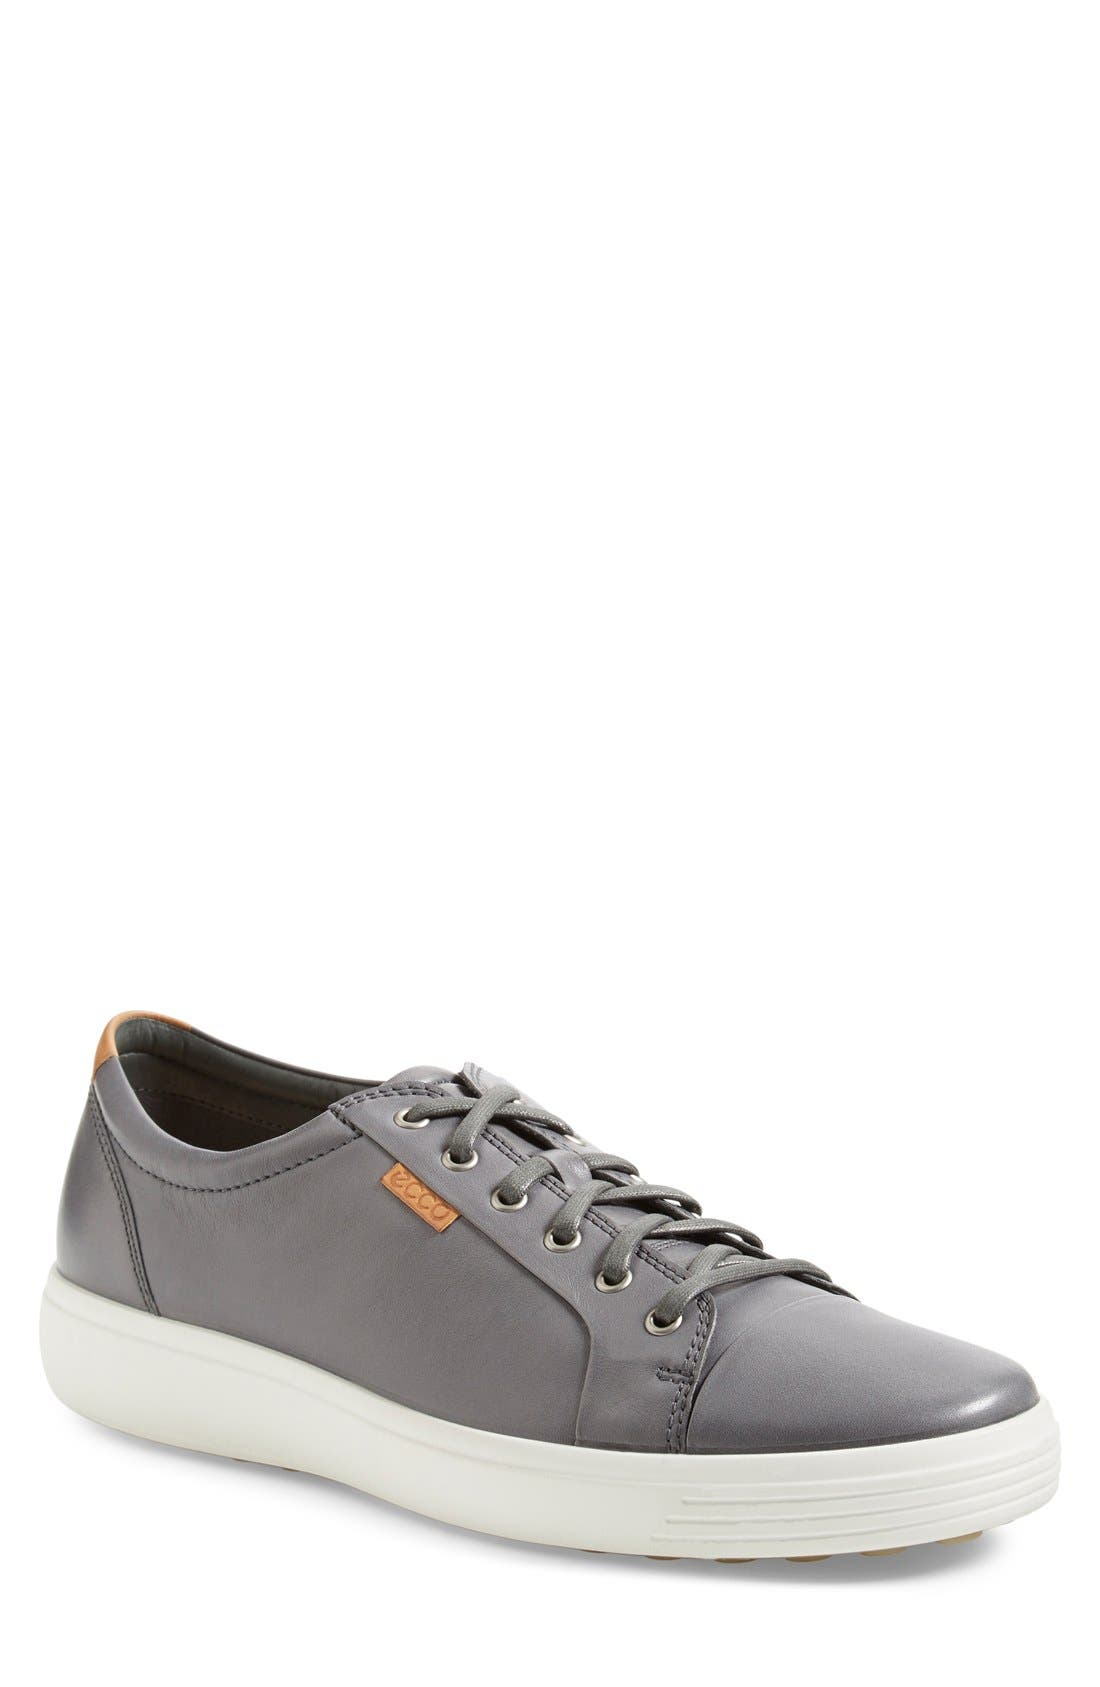 Main Image - ECCO Soft VII Lace-Up Sneaker (Men)